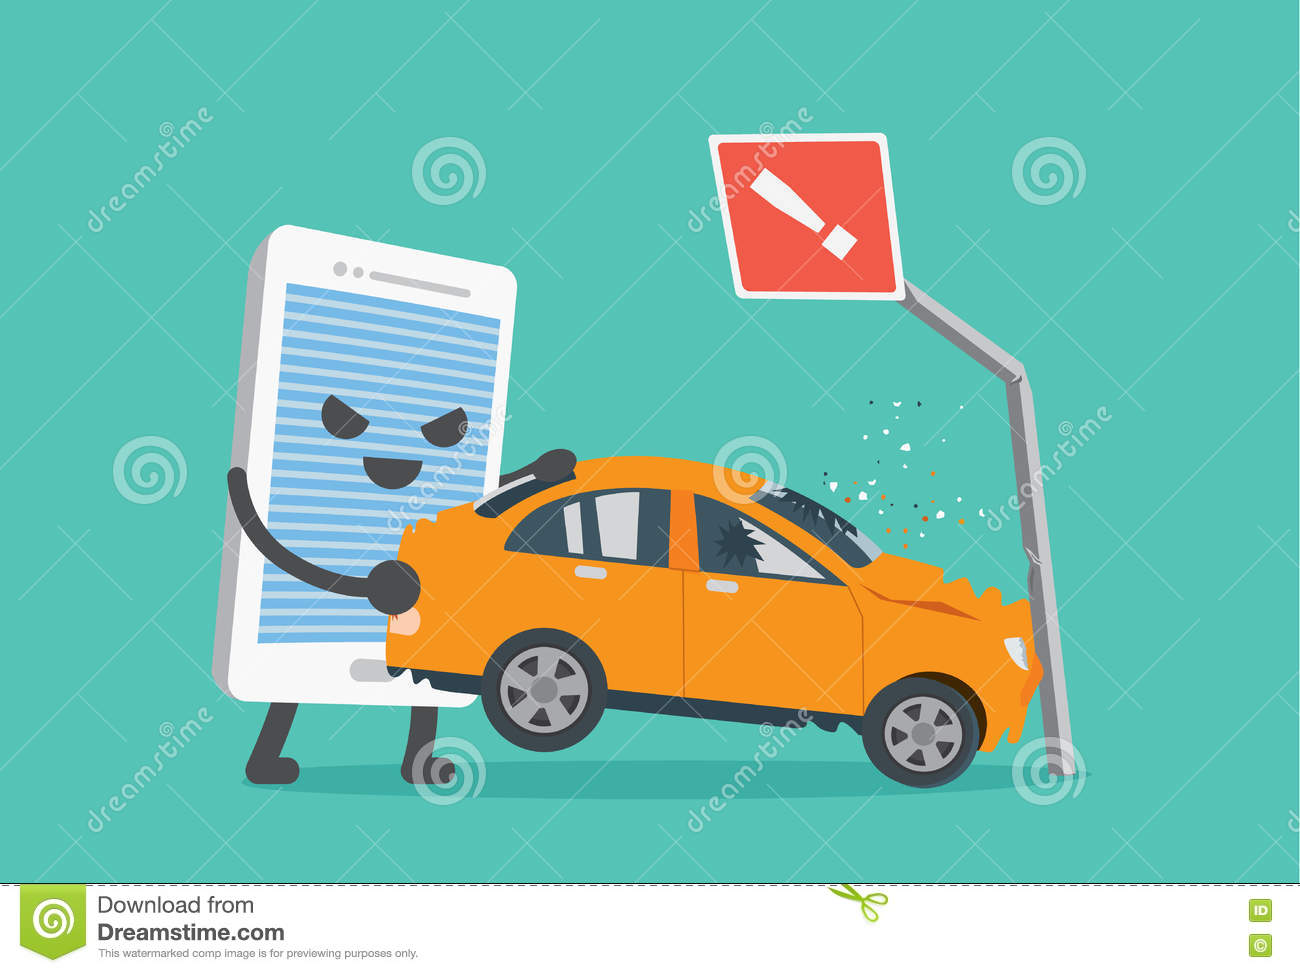 Telephone Make Car Accident. Stock Vector - Illustration of dead ...